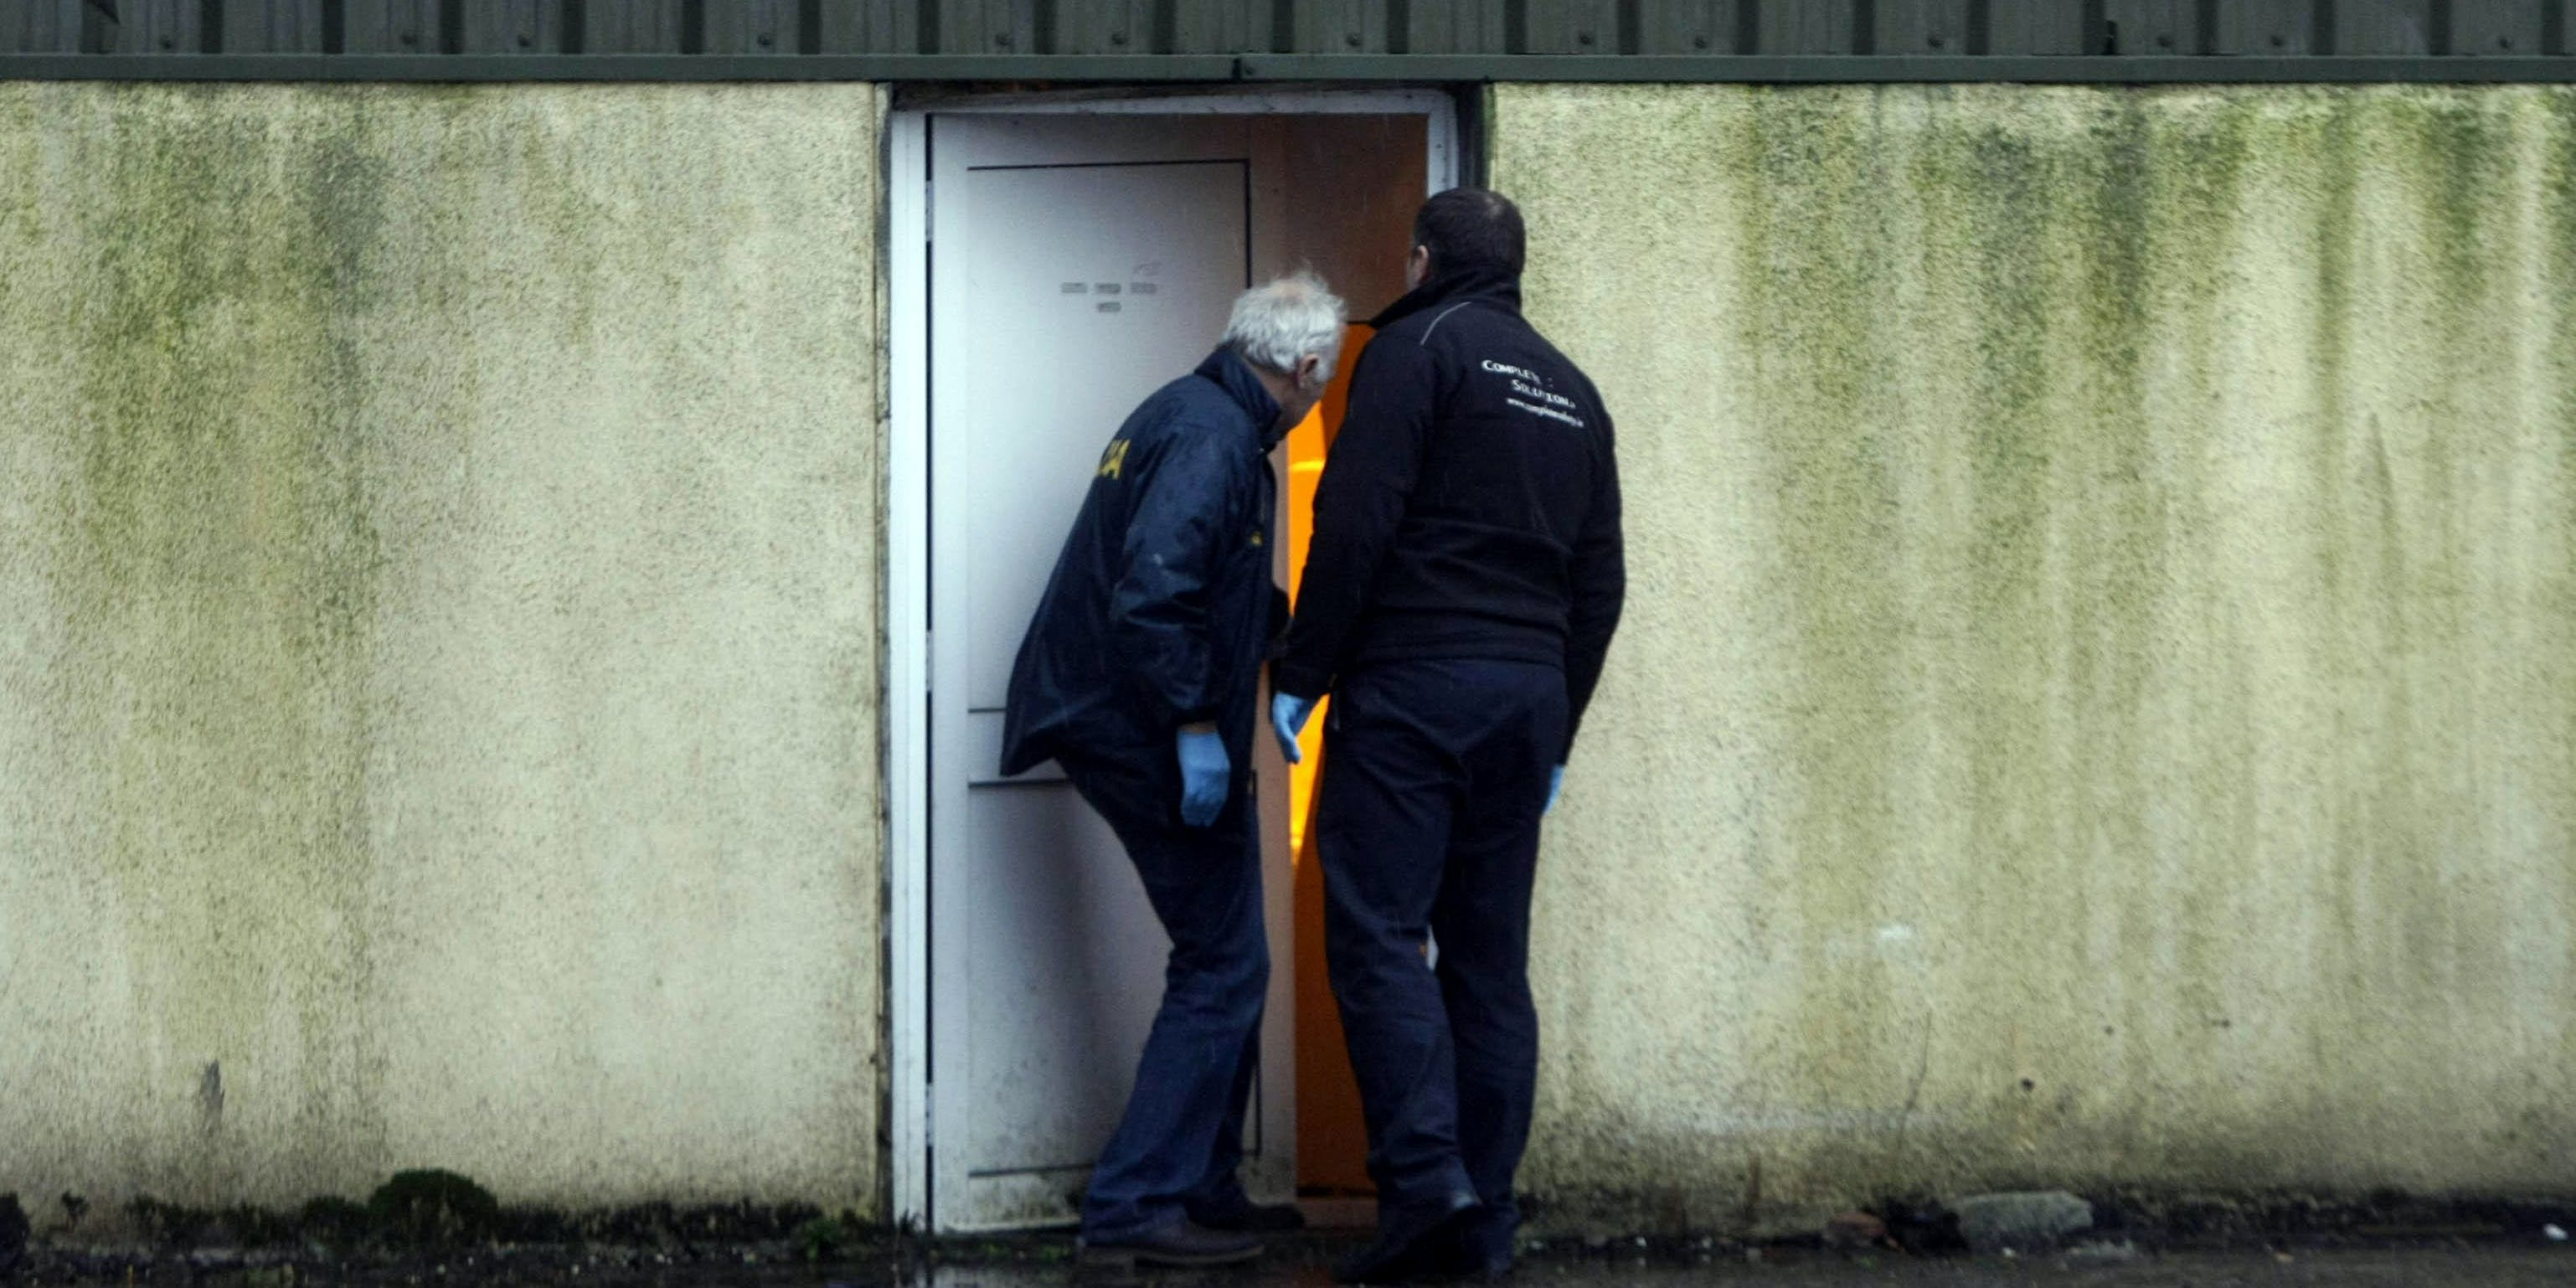 Police raid one of the biggest cannabis factories in Ireland. Recently, in Texas, the Green Gorilla dispensary was raided of its CBD products and $170,000.